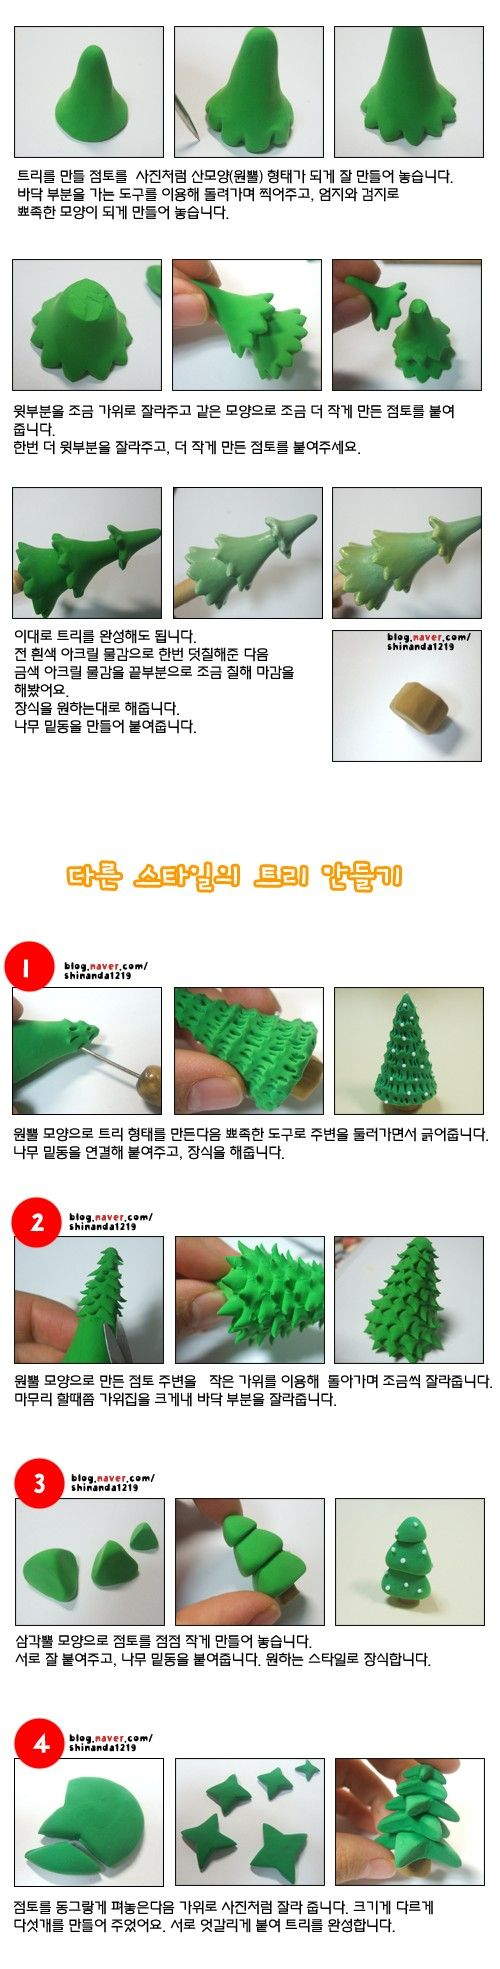 DIY Polymer Clay Christmas Tree Tutorial